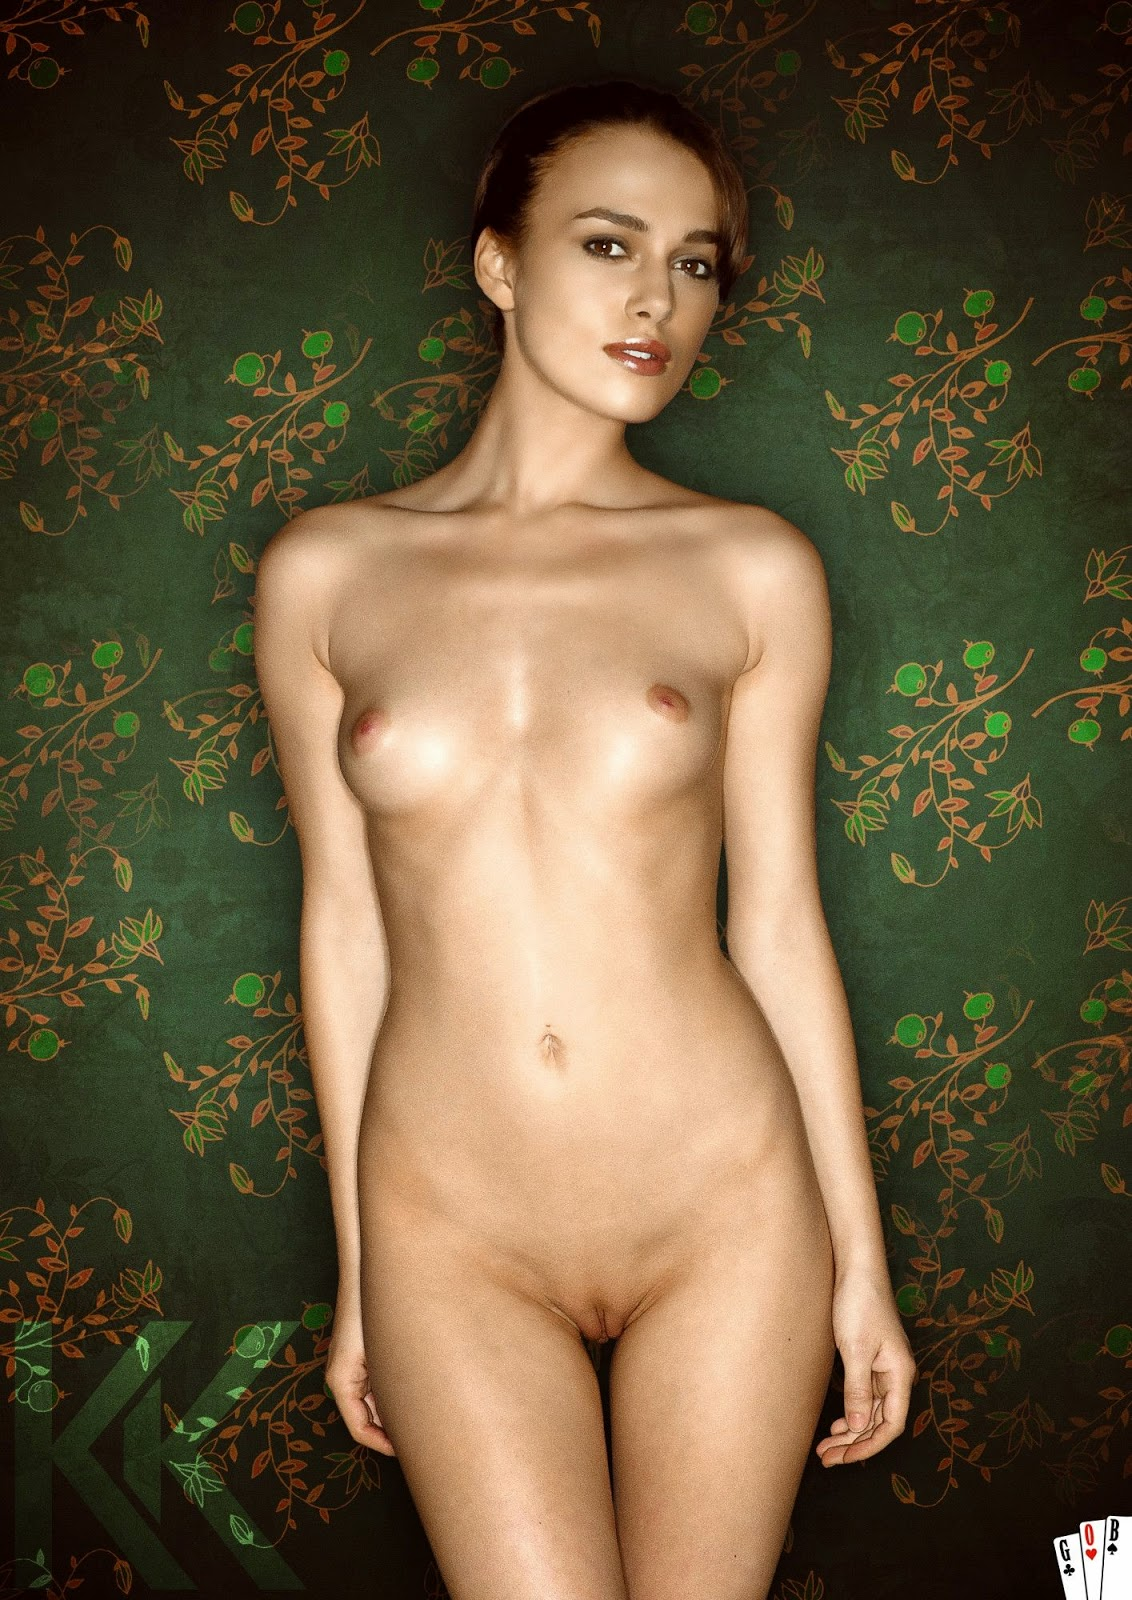 Not know, Keira knightley nudes videos free